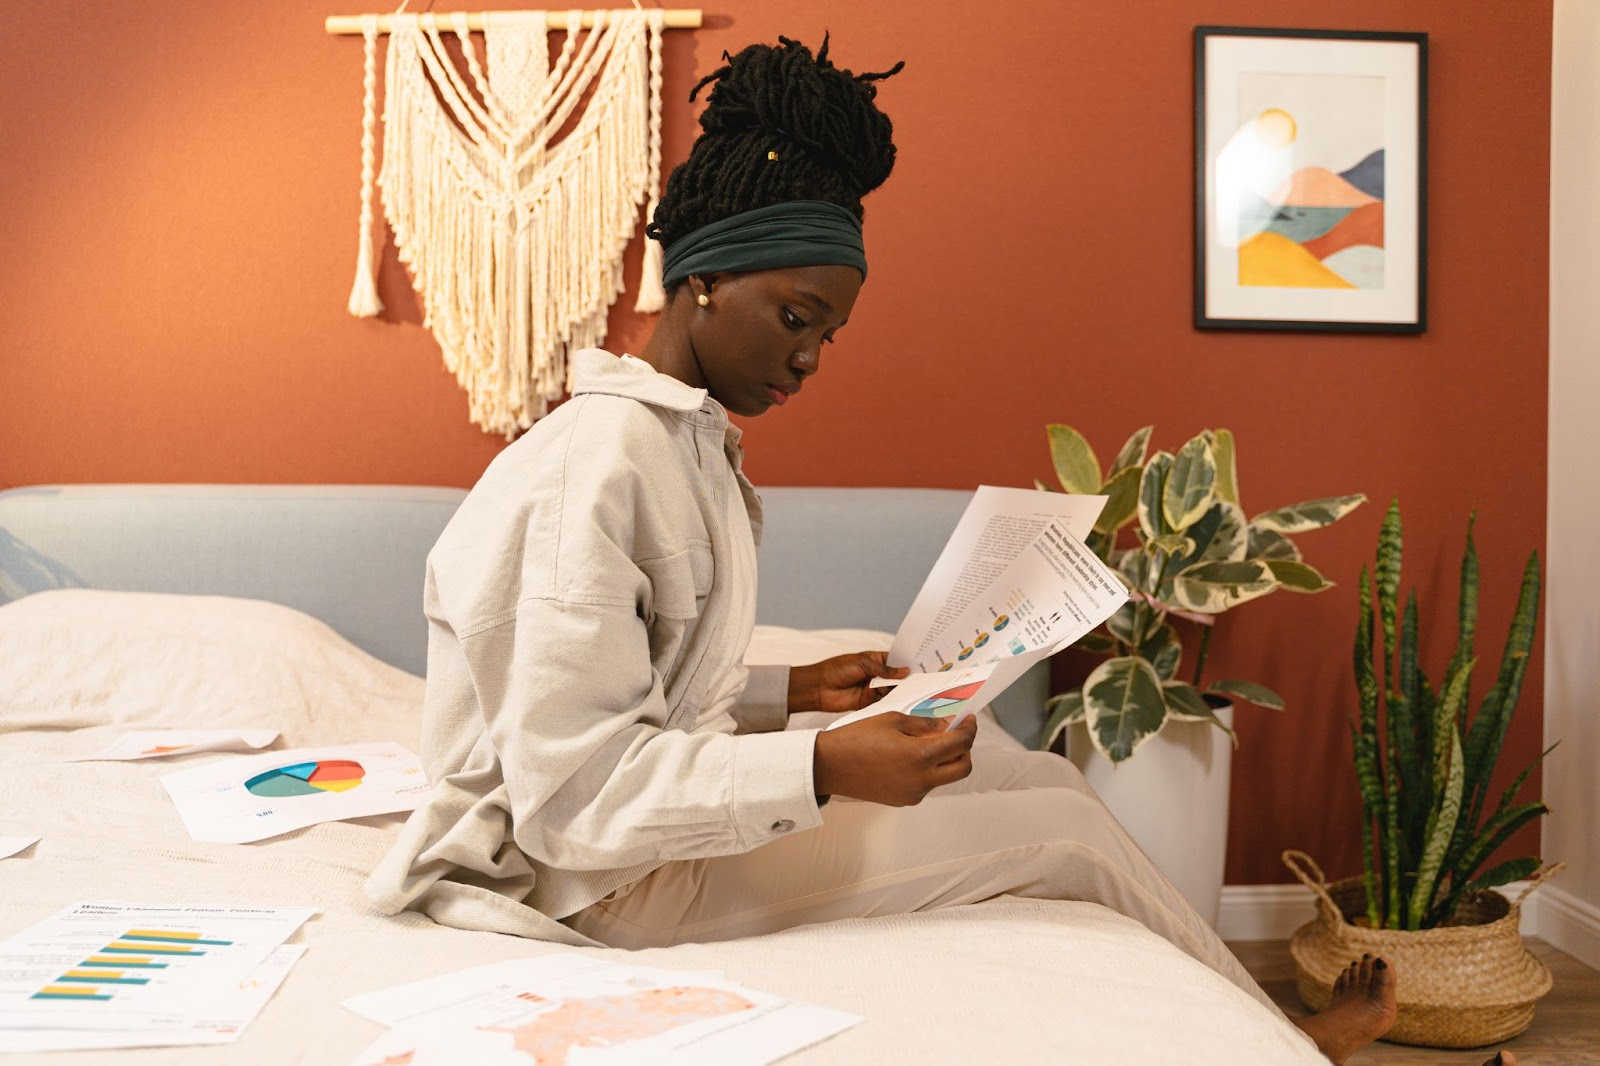 A teenage girl sits on a bed, reading graphs.